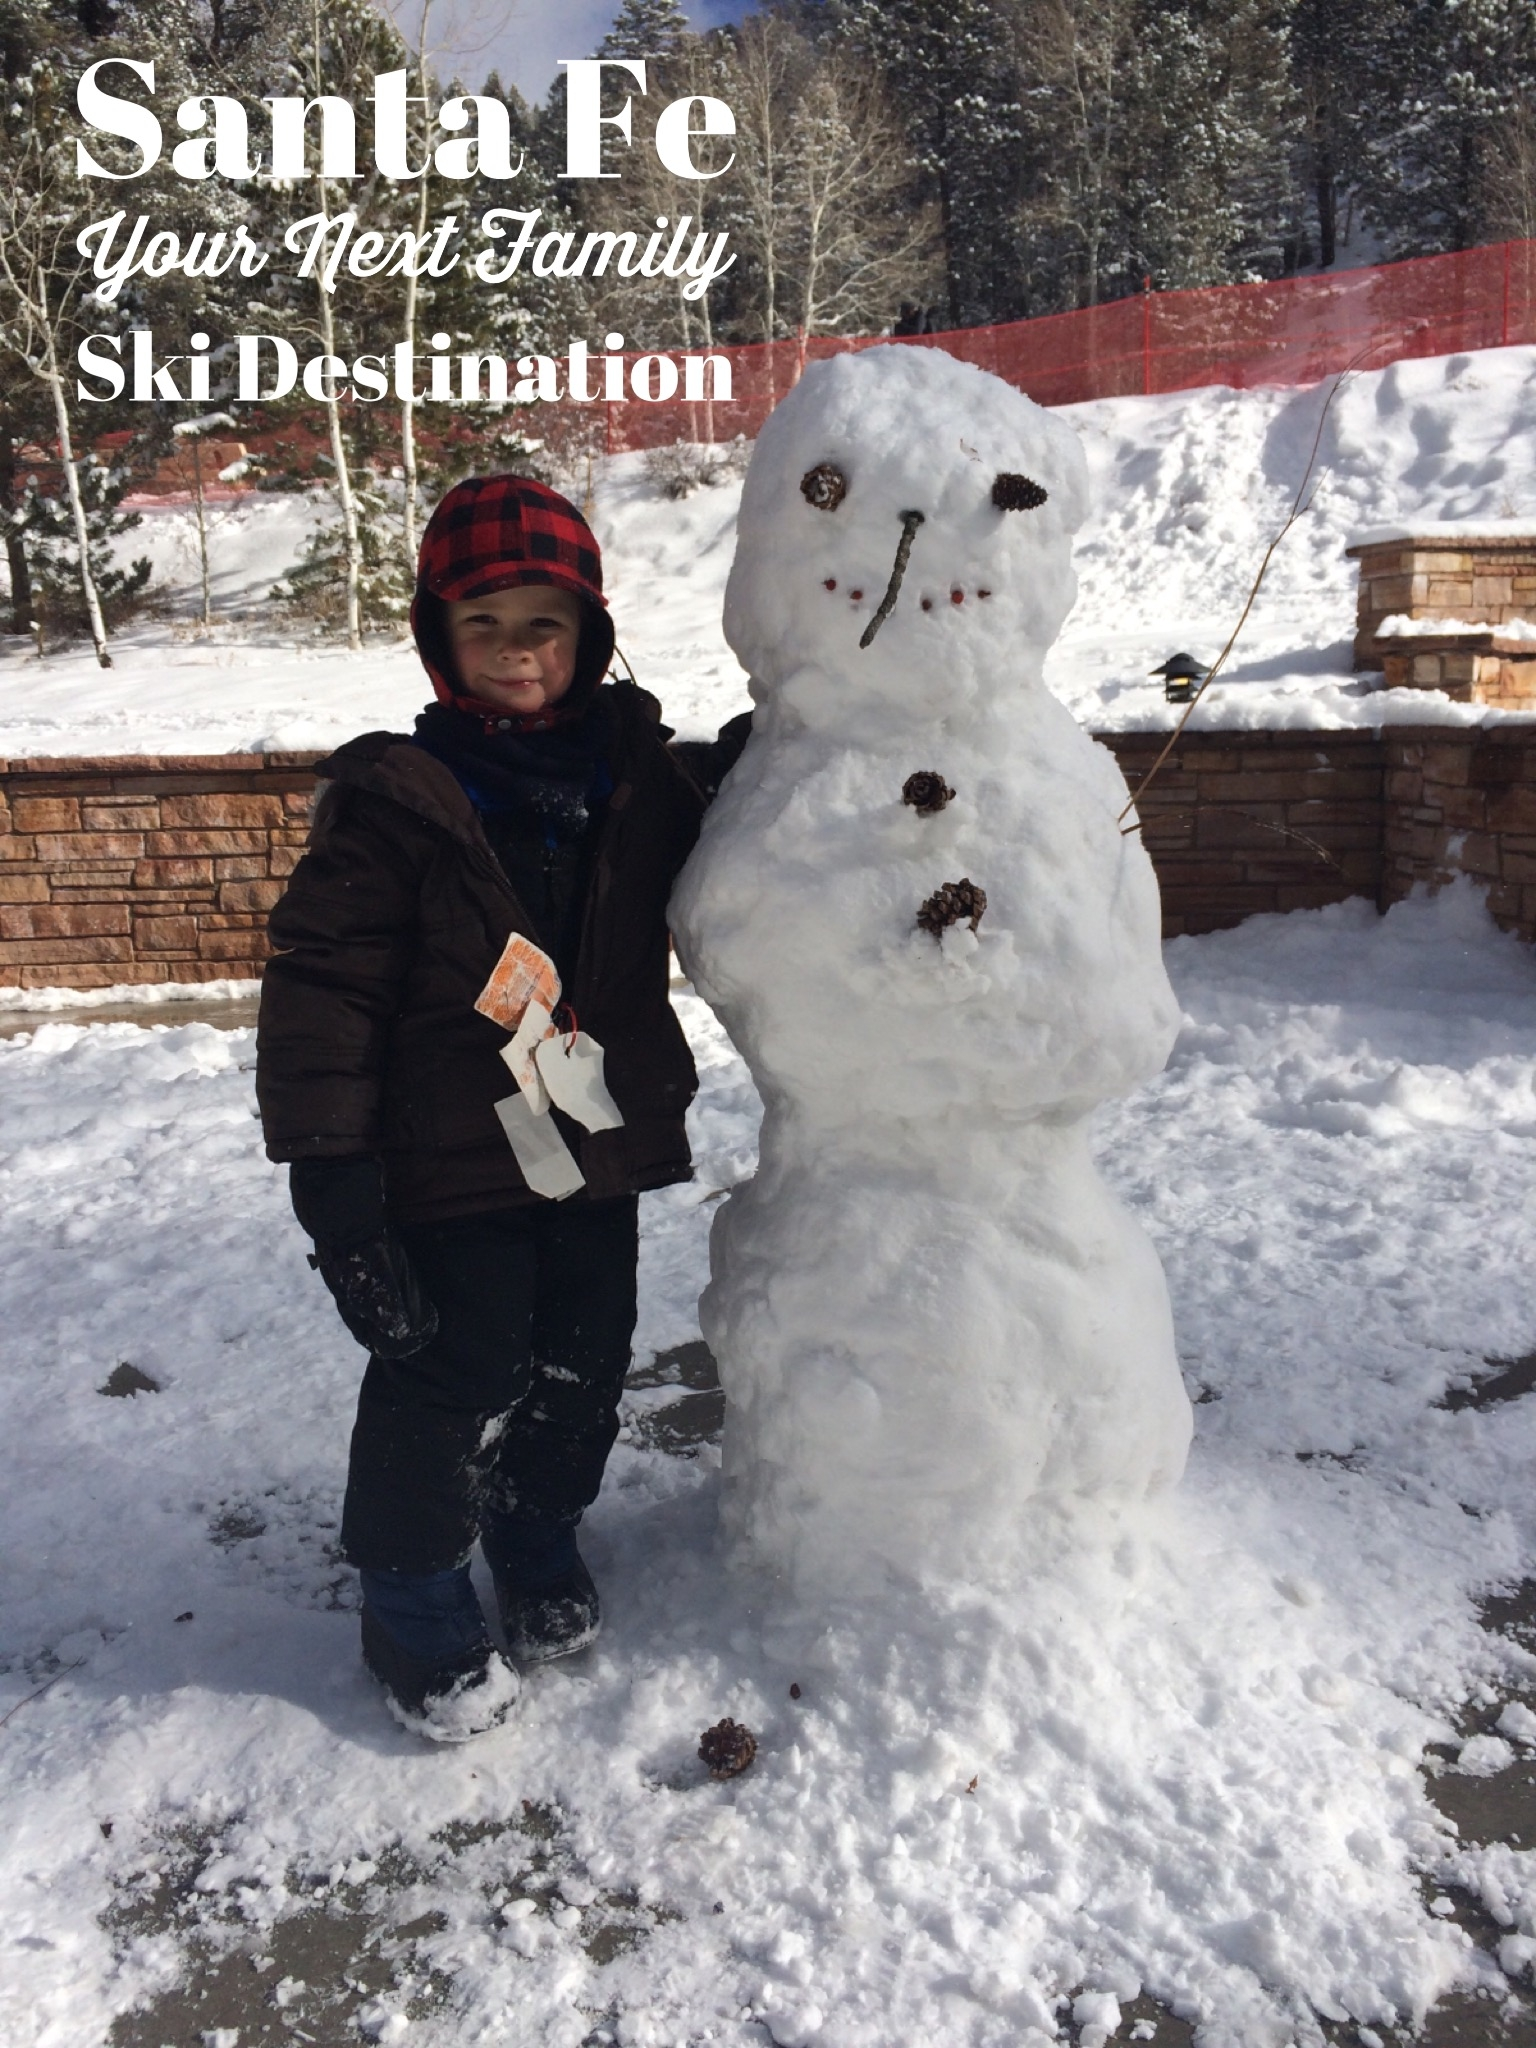 Santa Fe offers lots of options for families on a budget. Ski Santa Fe